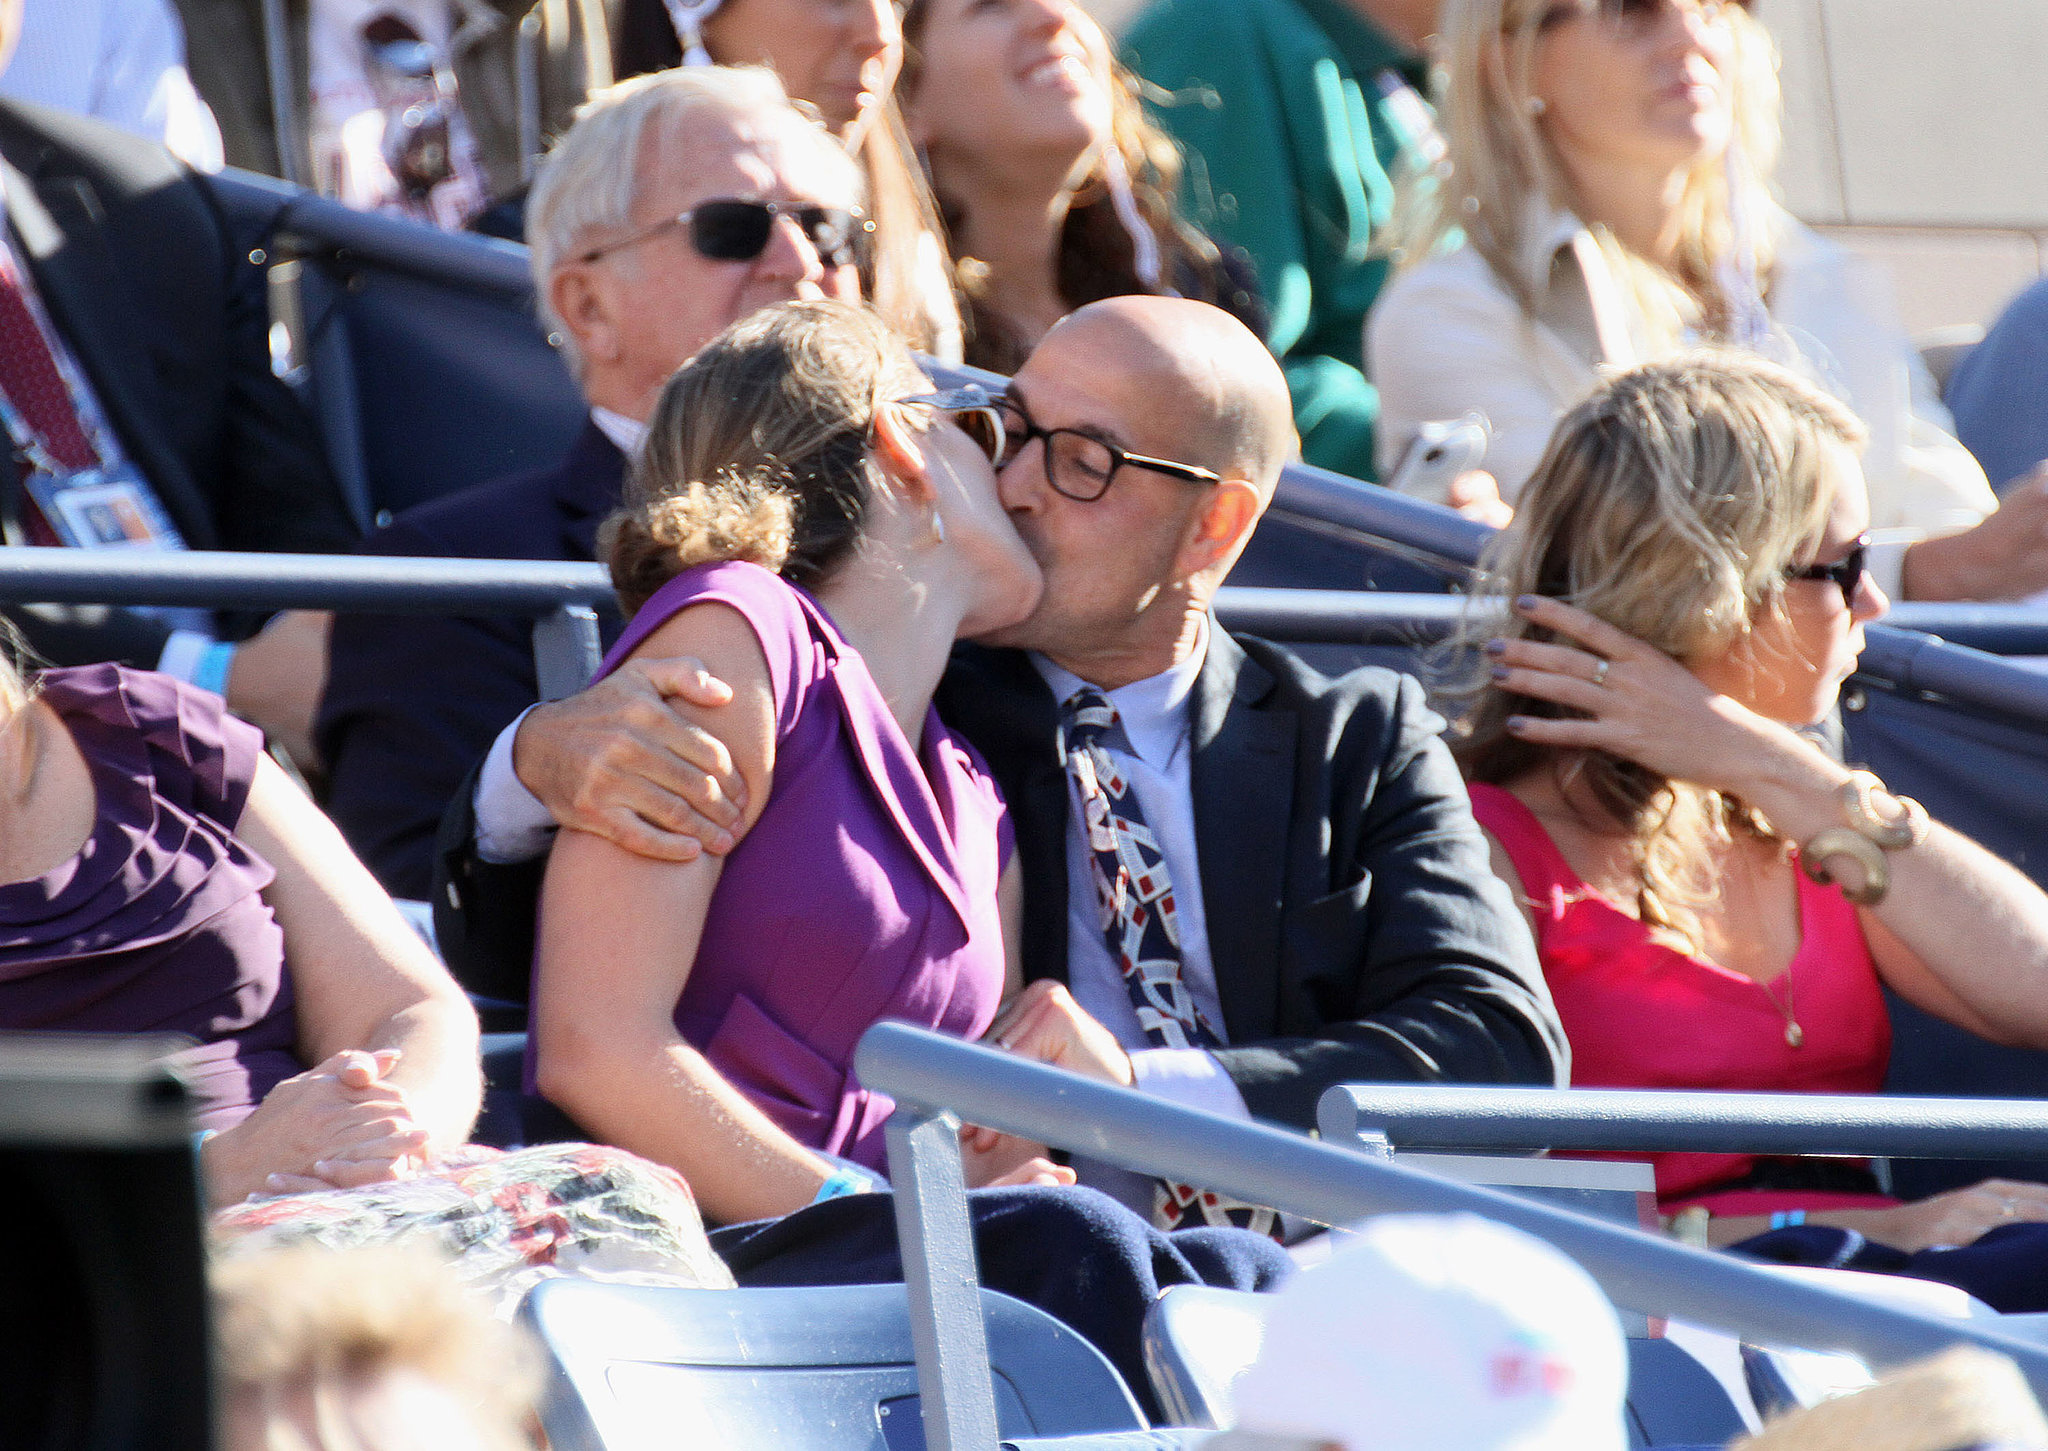 Stanley Tucci and Felicity Blunt kissed in the stands at the US Open in September 2012.